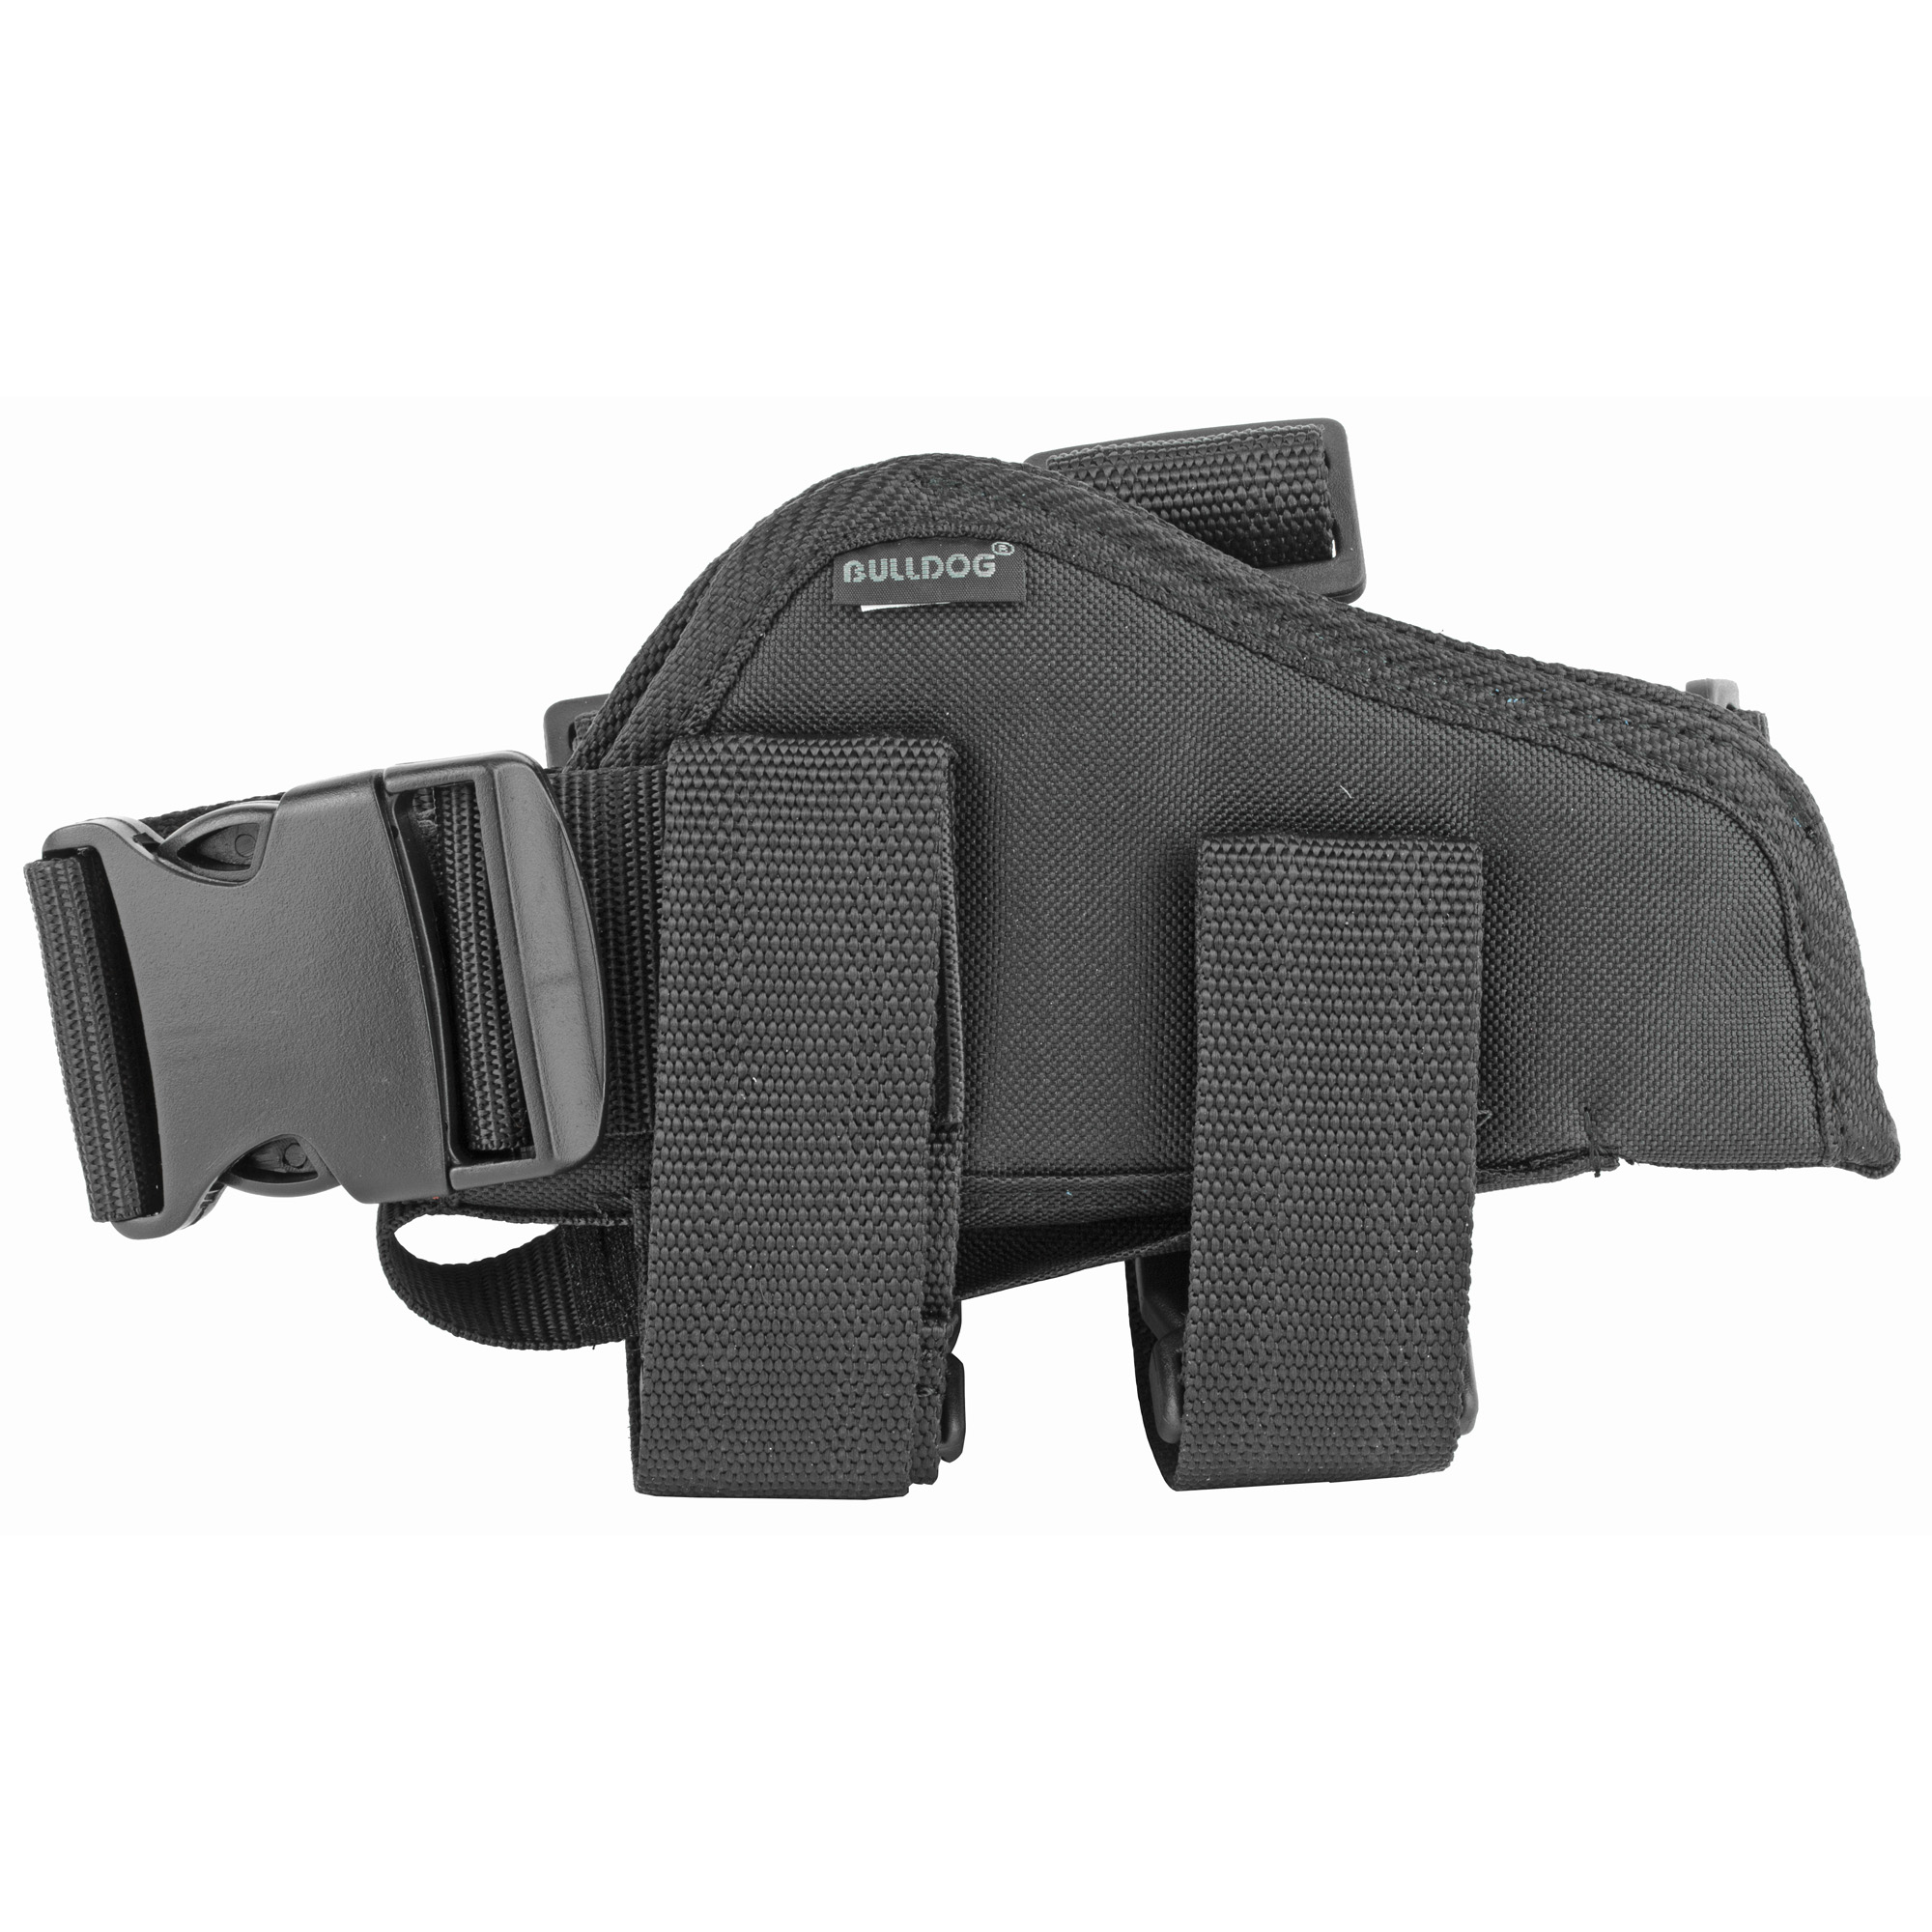 """Bulldog Cases offers one of the best leg holsters on the market. The double leg straps feature a non-slipping lining that ensures the holster stays in place"""" quick release buckles allow for quick removal and the straps have plastic slider buckles making them fully adjustable. The adjustable belt loop adds another security measure to the holster which features a thumb break and extra magazine pouch. This holster will fit large framed handguns with 3.5""""-5"""" barrels."""